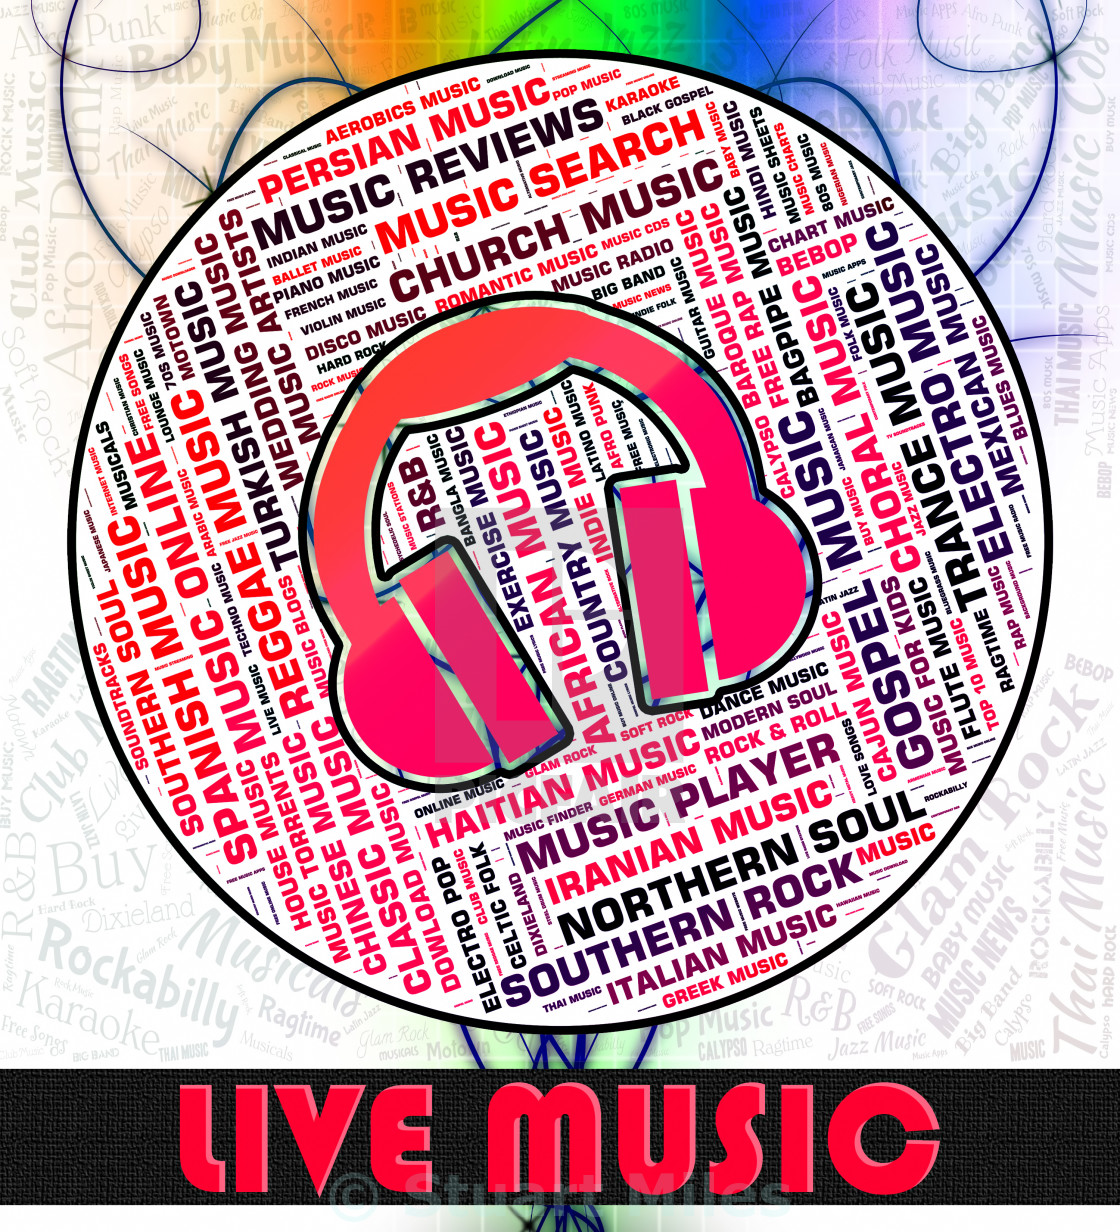 Live Music Indicates Sound Tracks And Audio - License